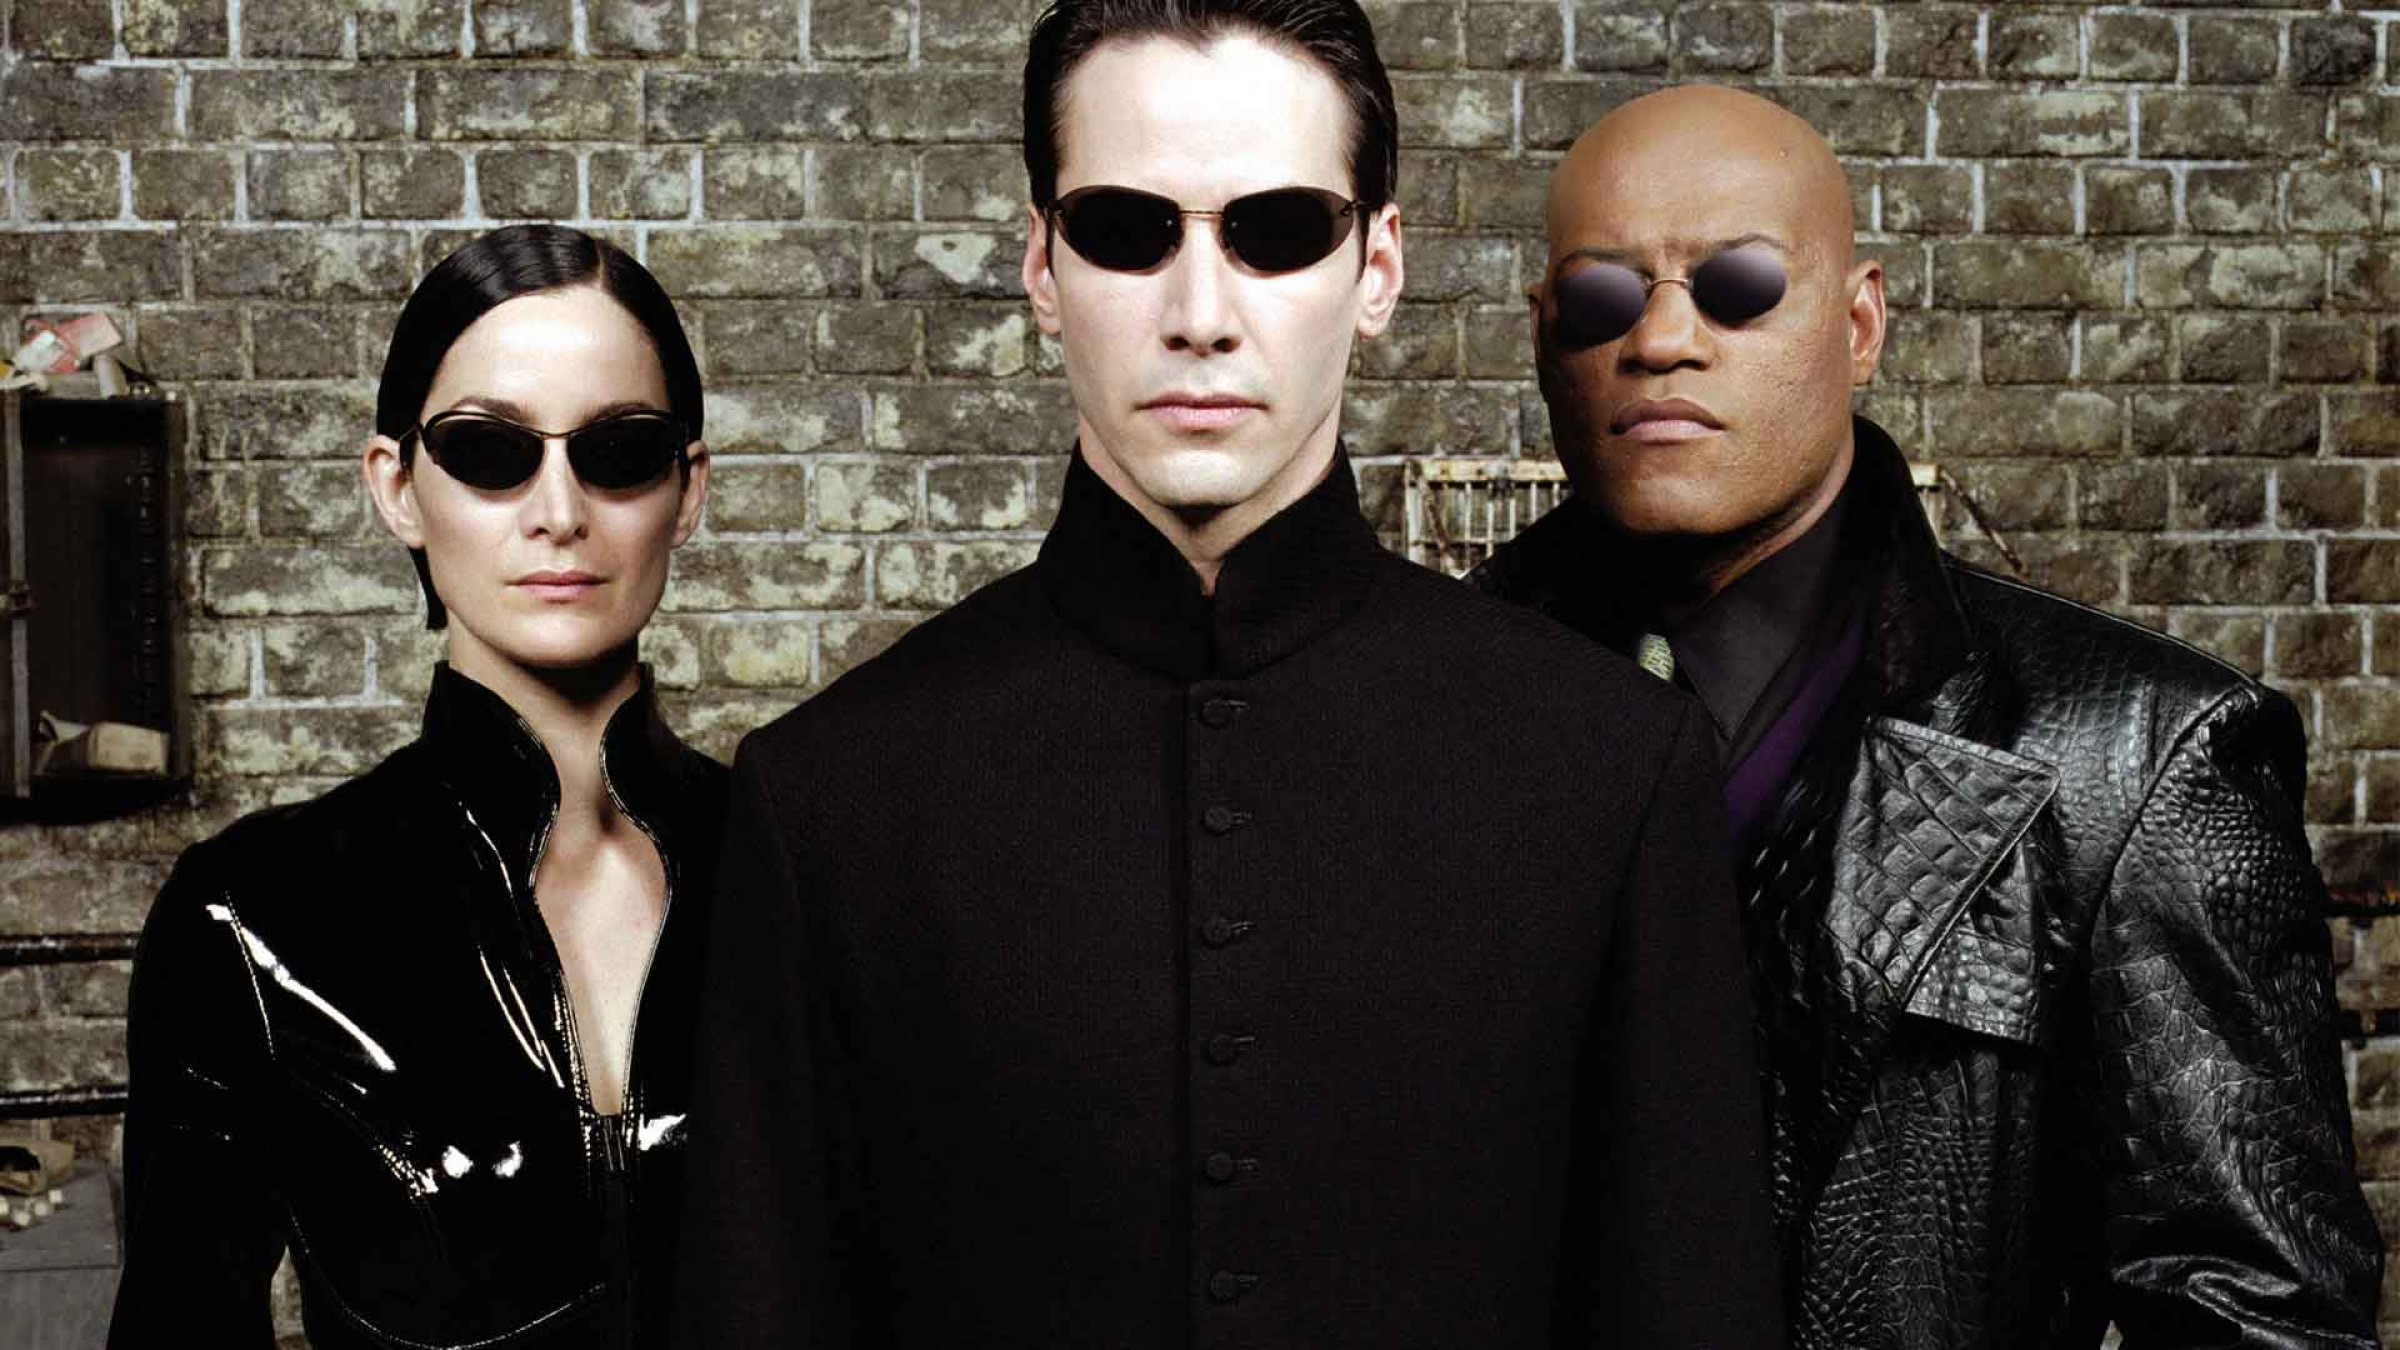 Image result for the matrix action movies